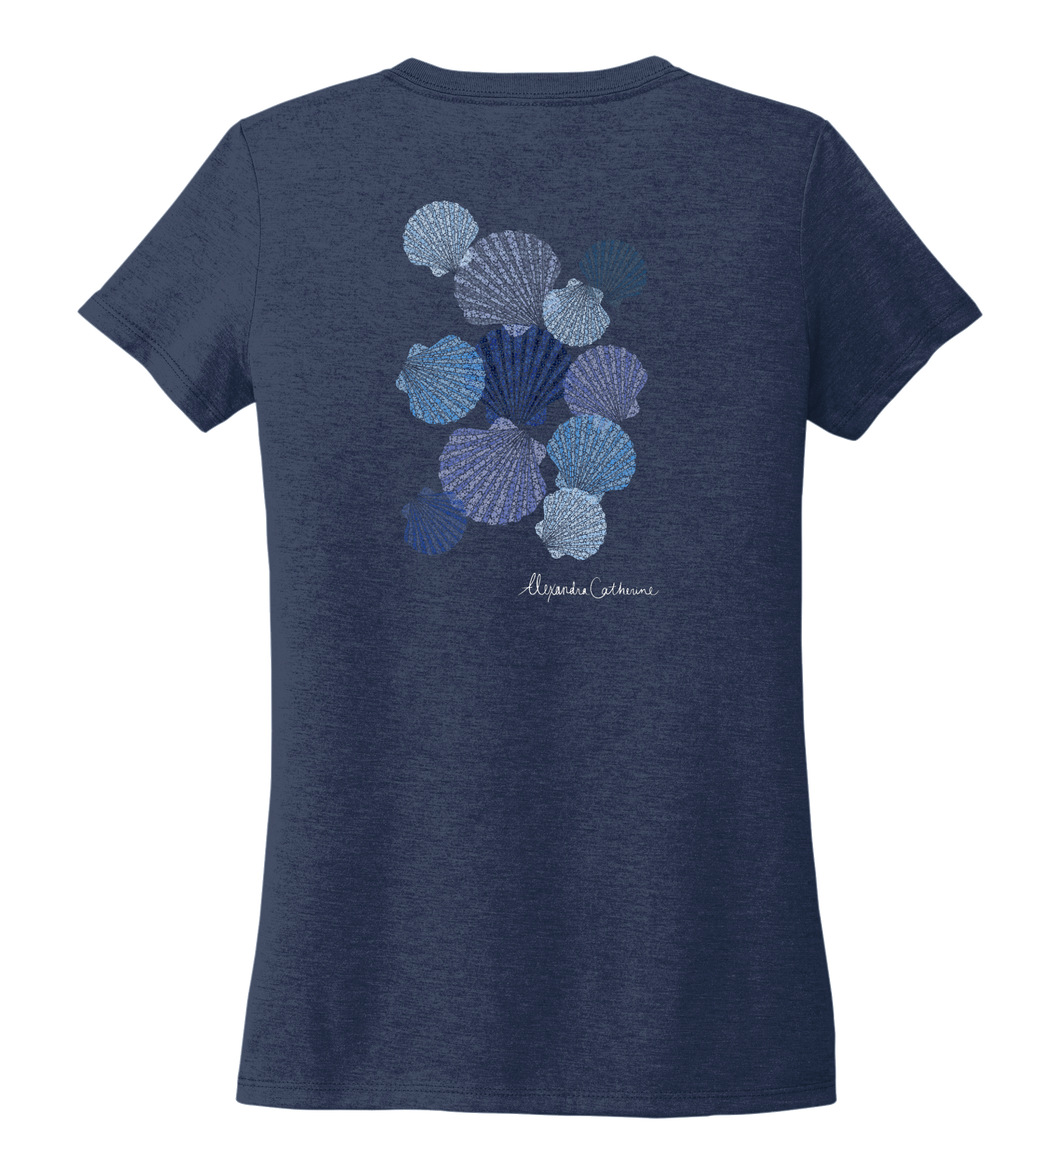 Alexandra Catherine, Tossed Seashells, Women's V-neck T-shirt in Deep Sea Blue